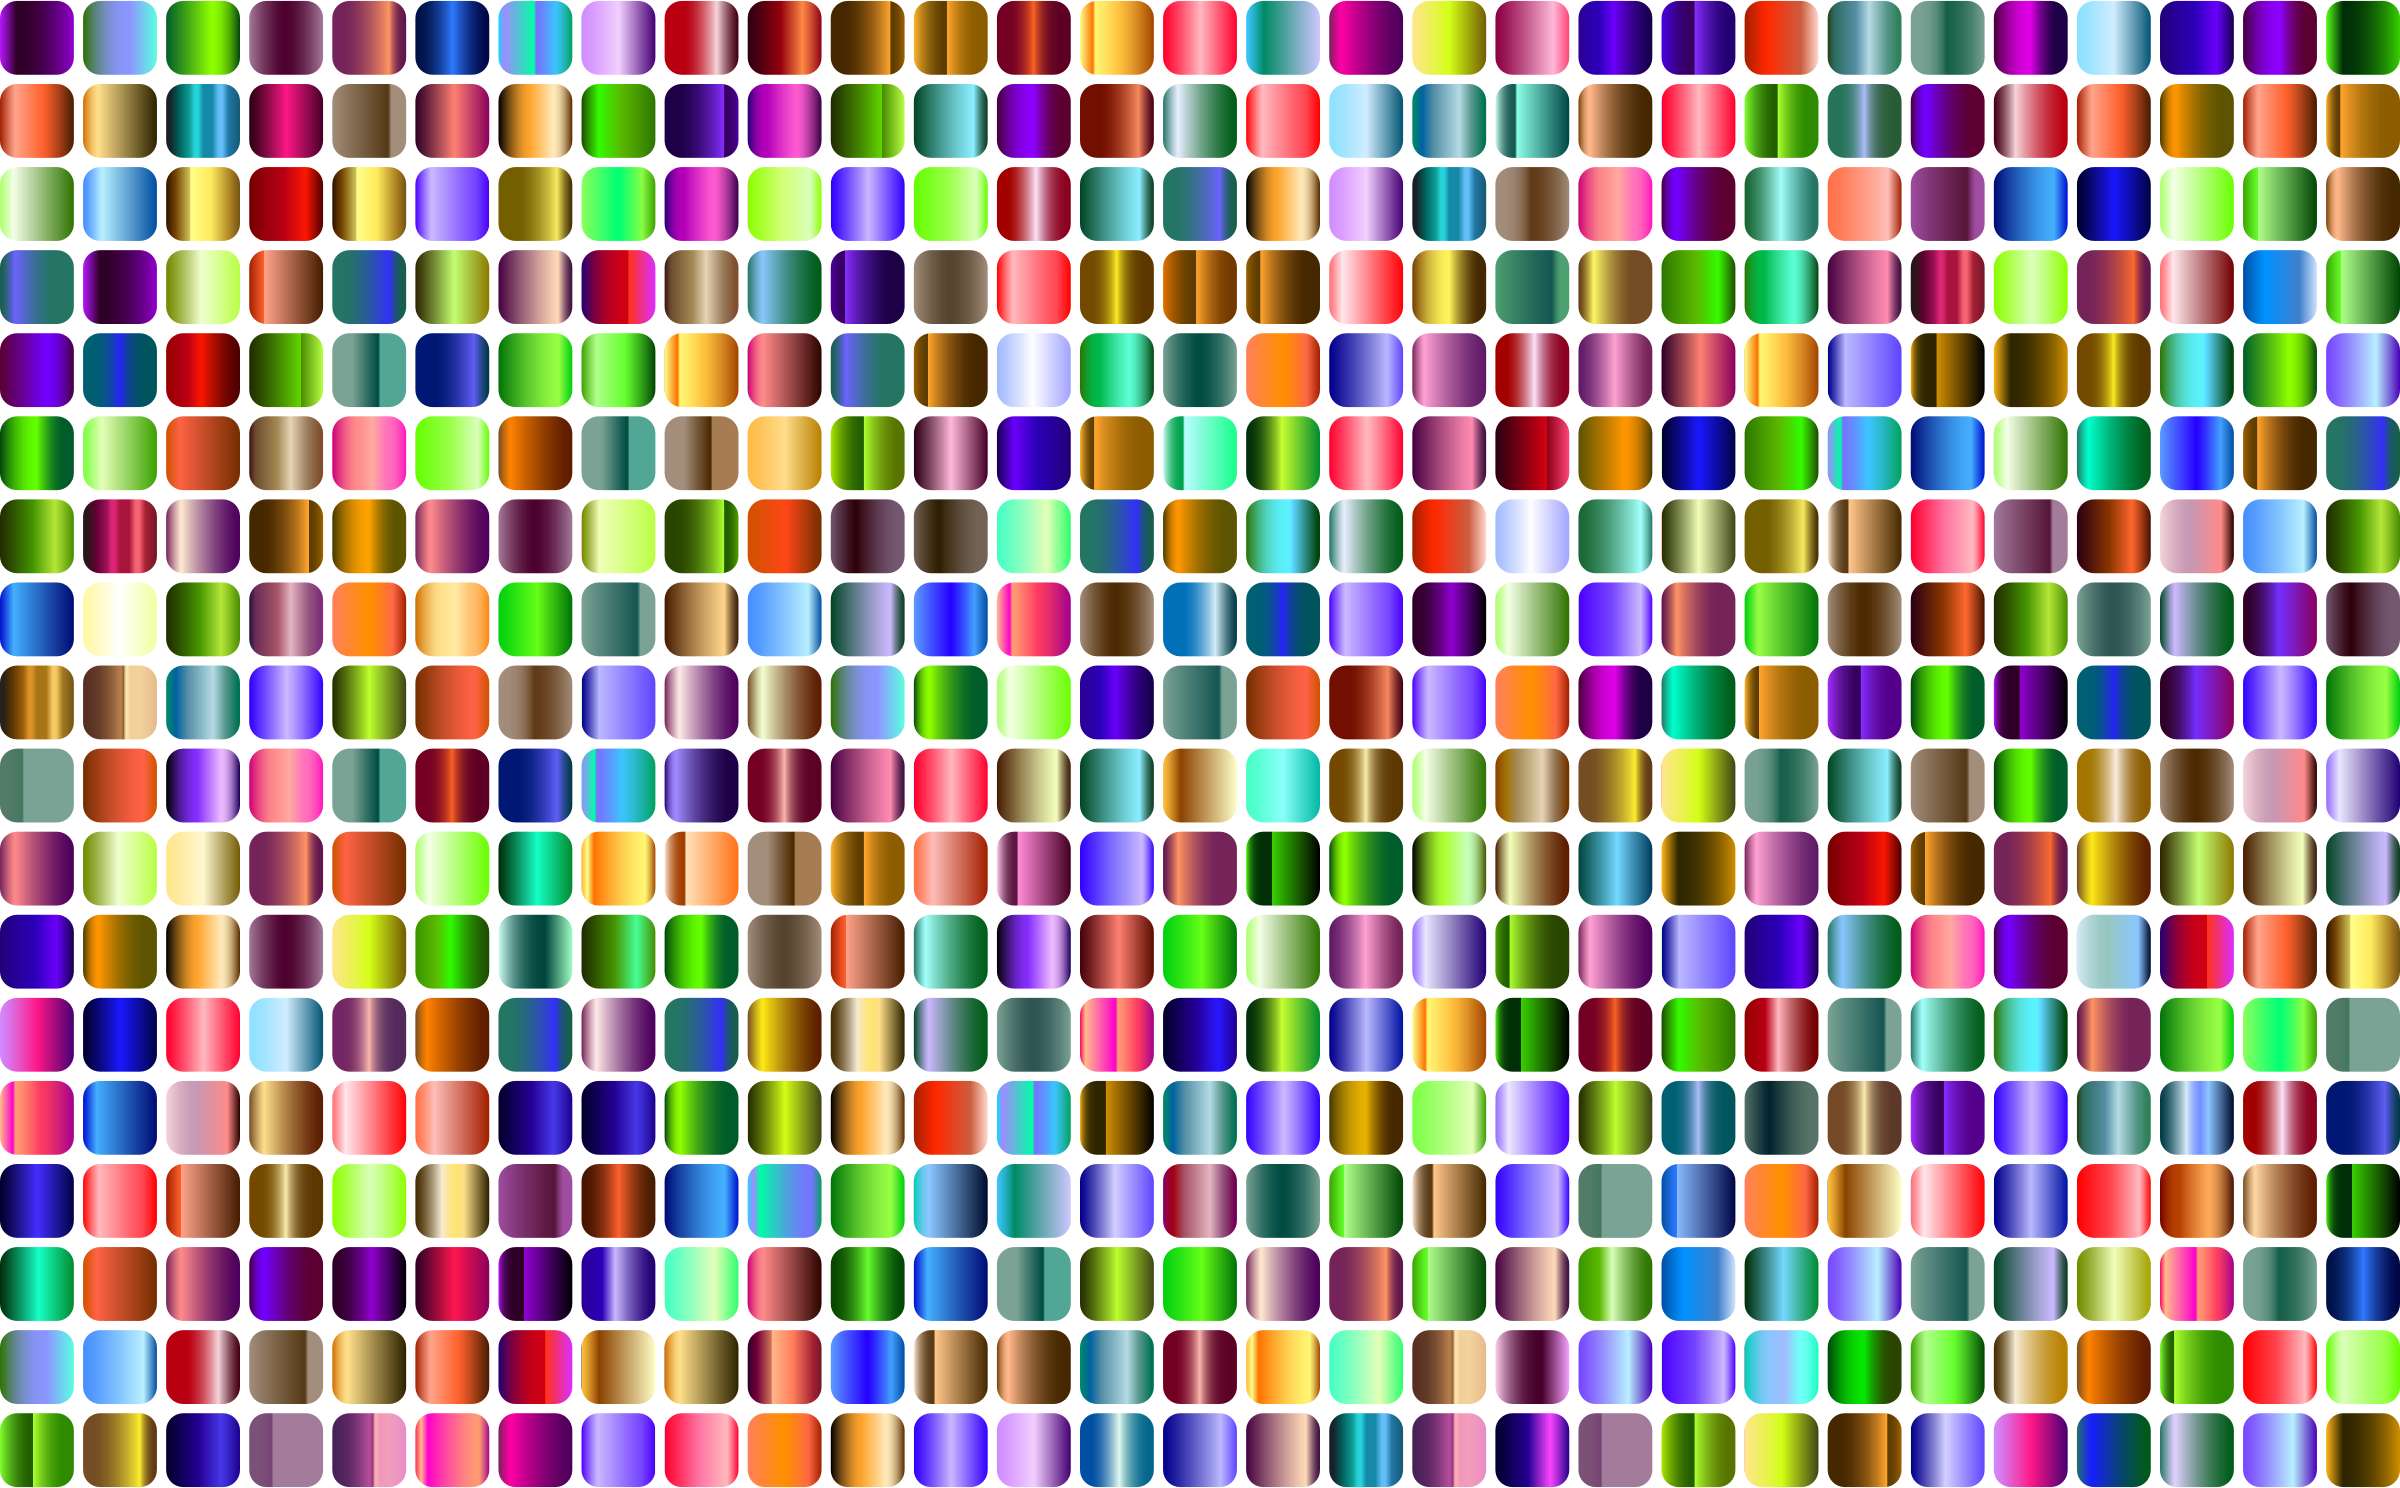 Prismatic Rounded Squares Grid 4 No Background by GDJ